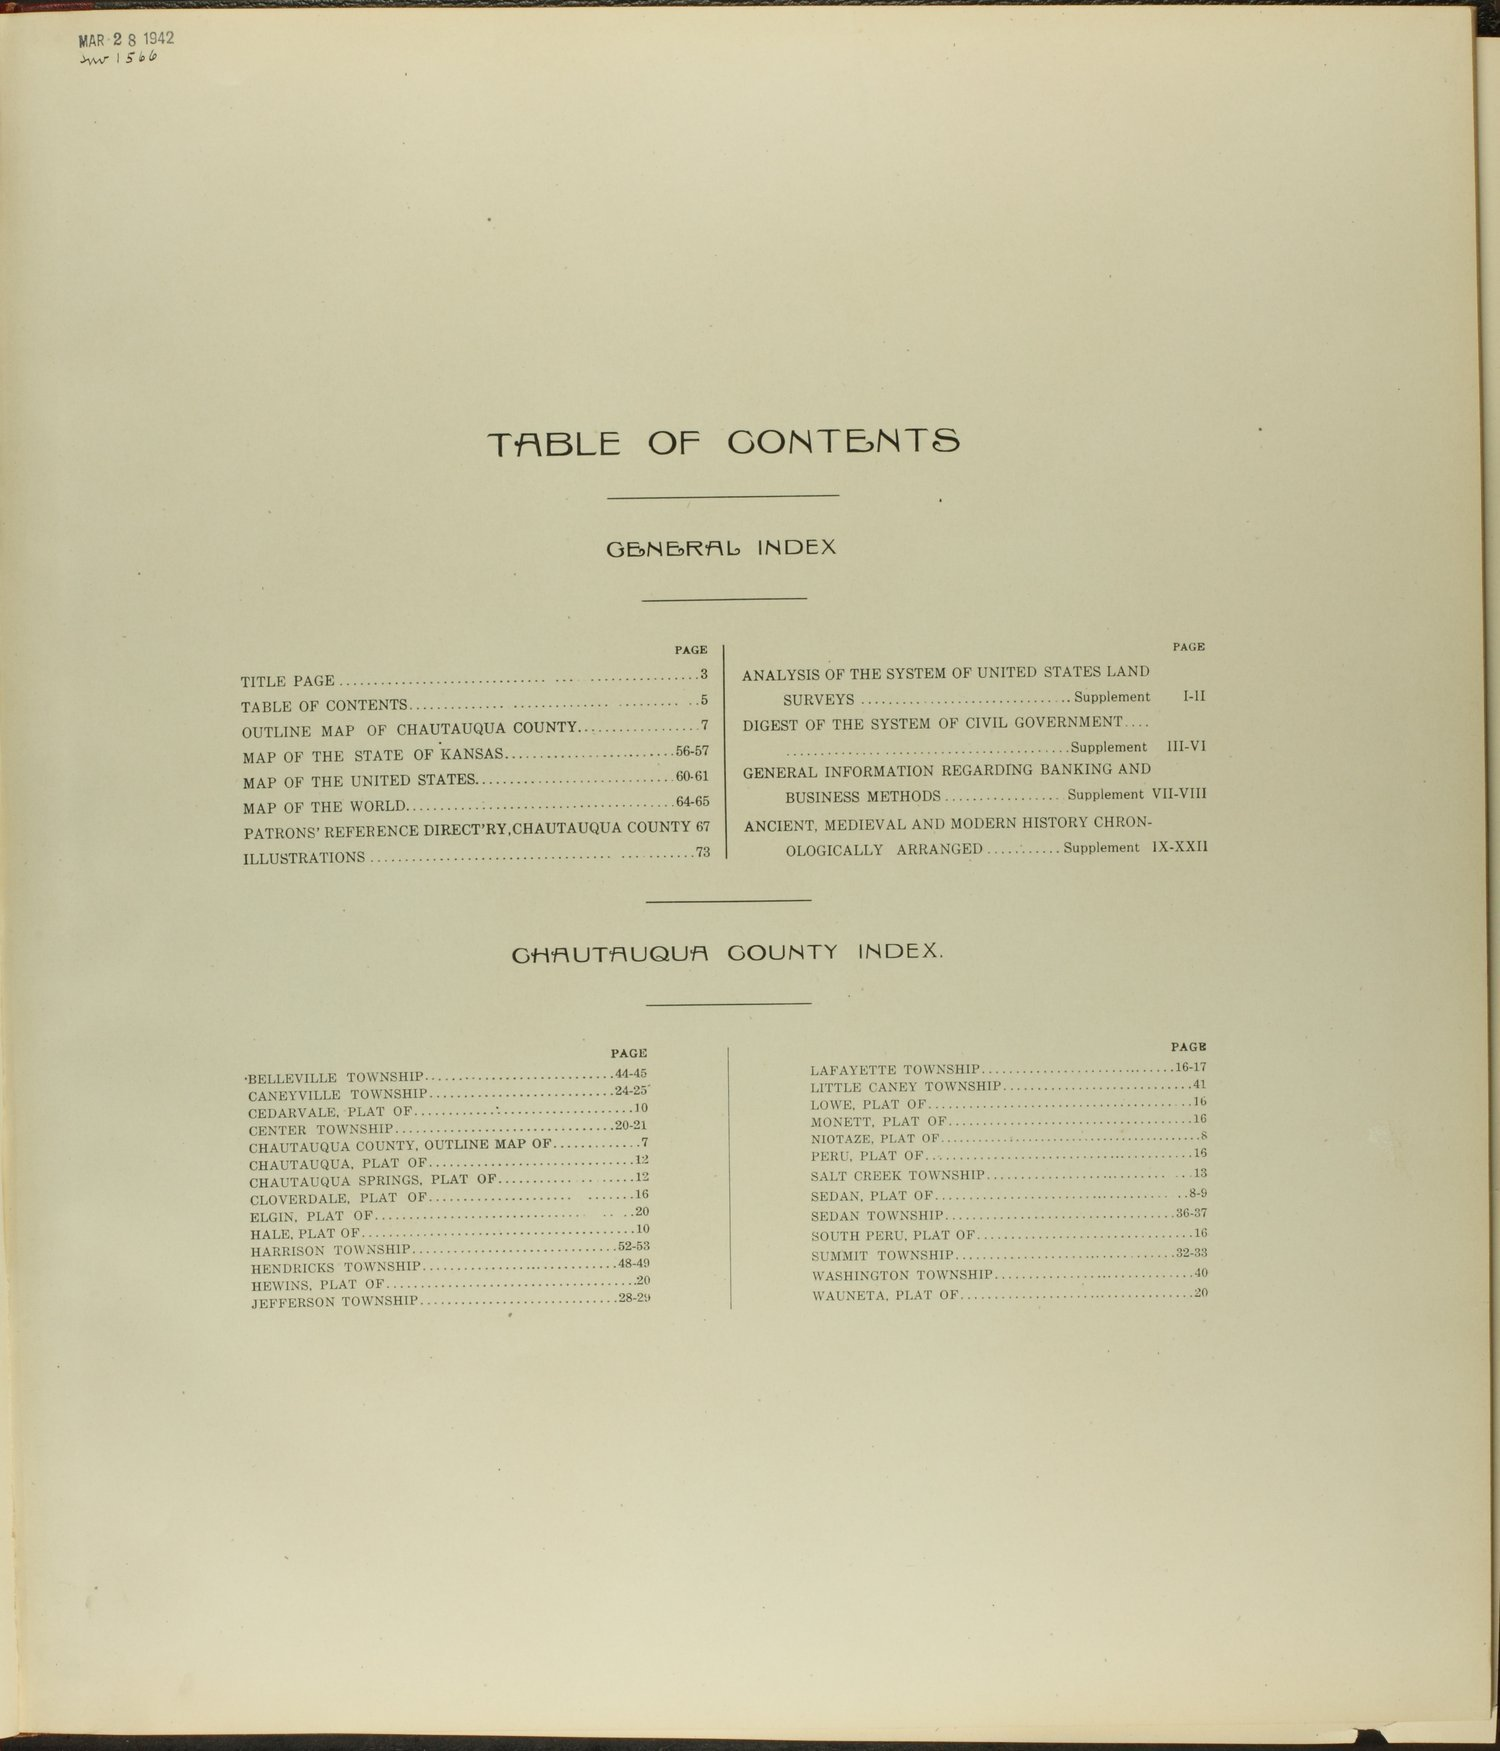 Standard atlas of Chautauqua County, Kansas - Table of Contents